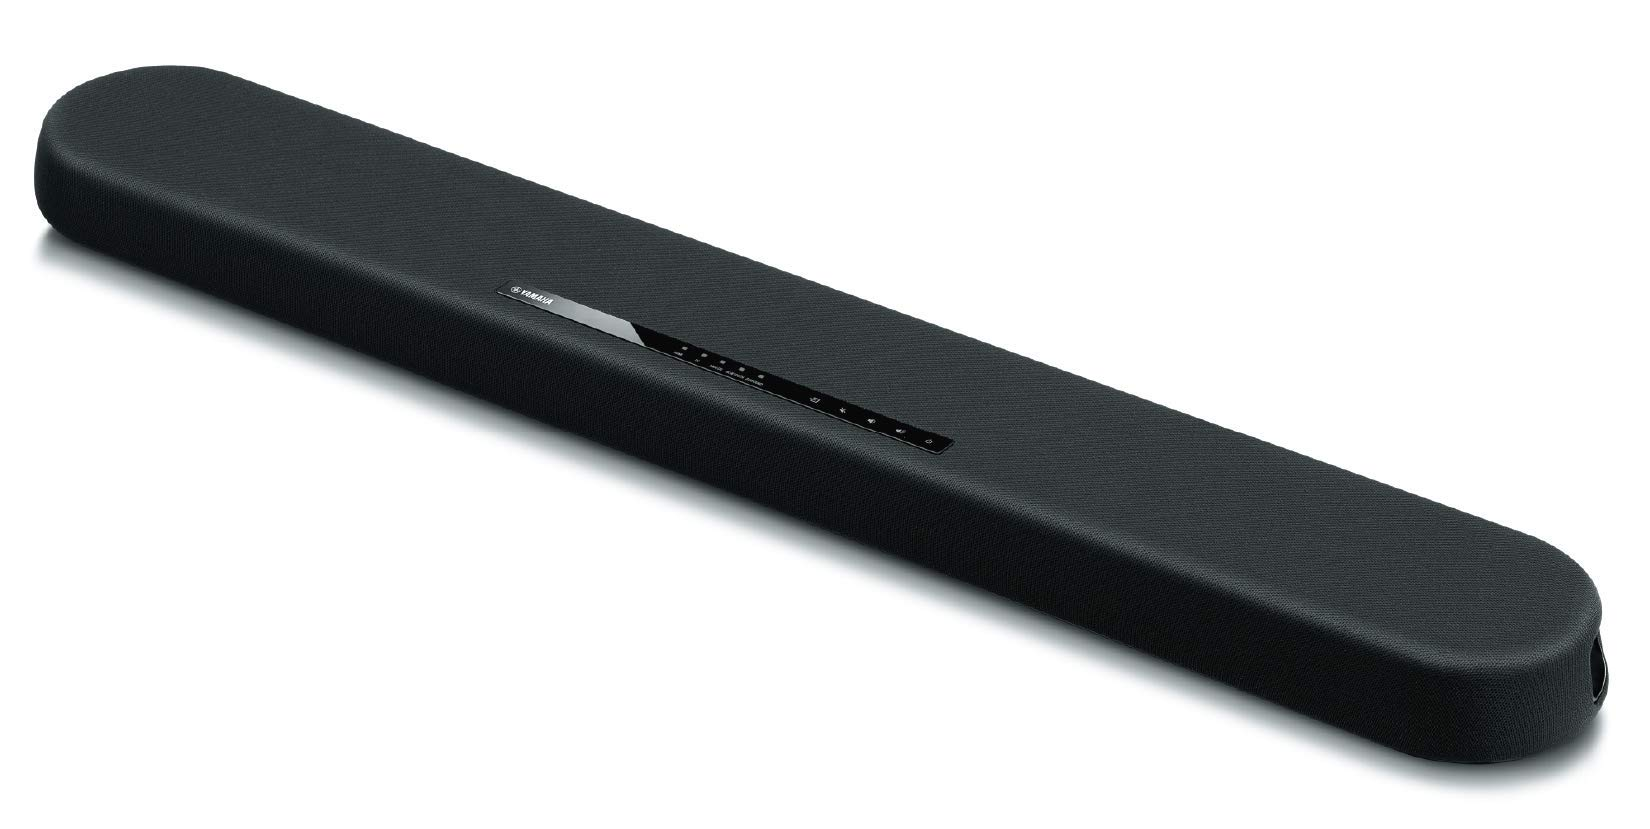 Yamaha ATS1080-R Sound Bar with Built-in Subwoofers and Bluetooth (Renewed) by Yamaha